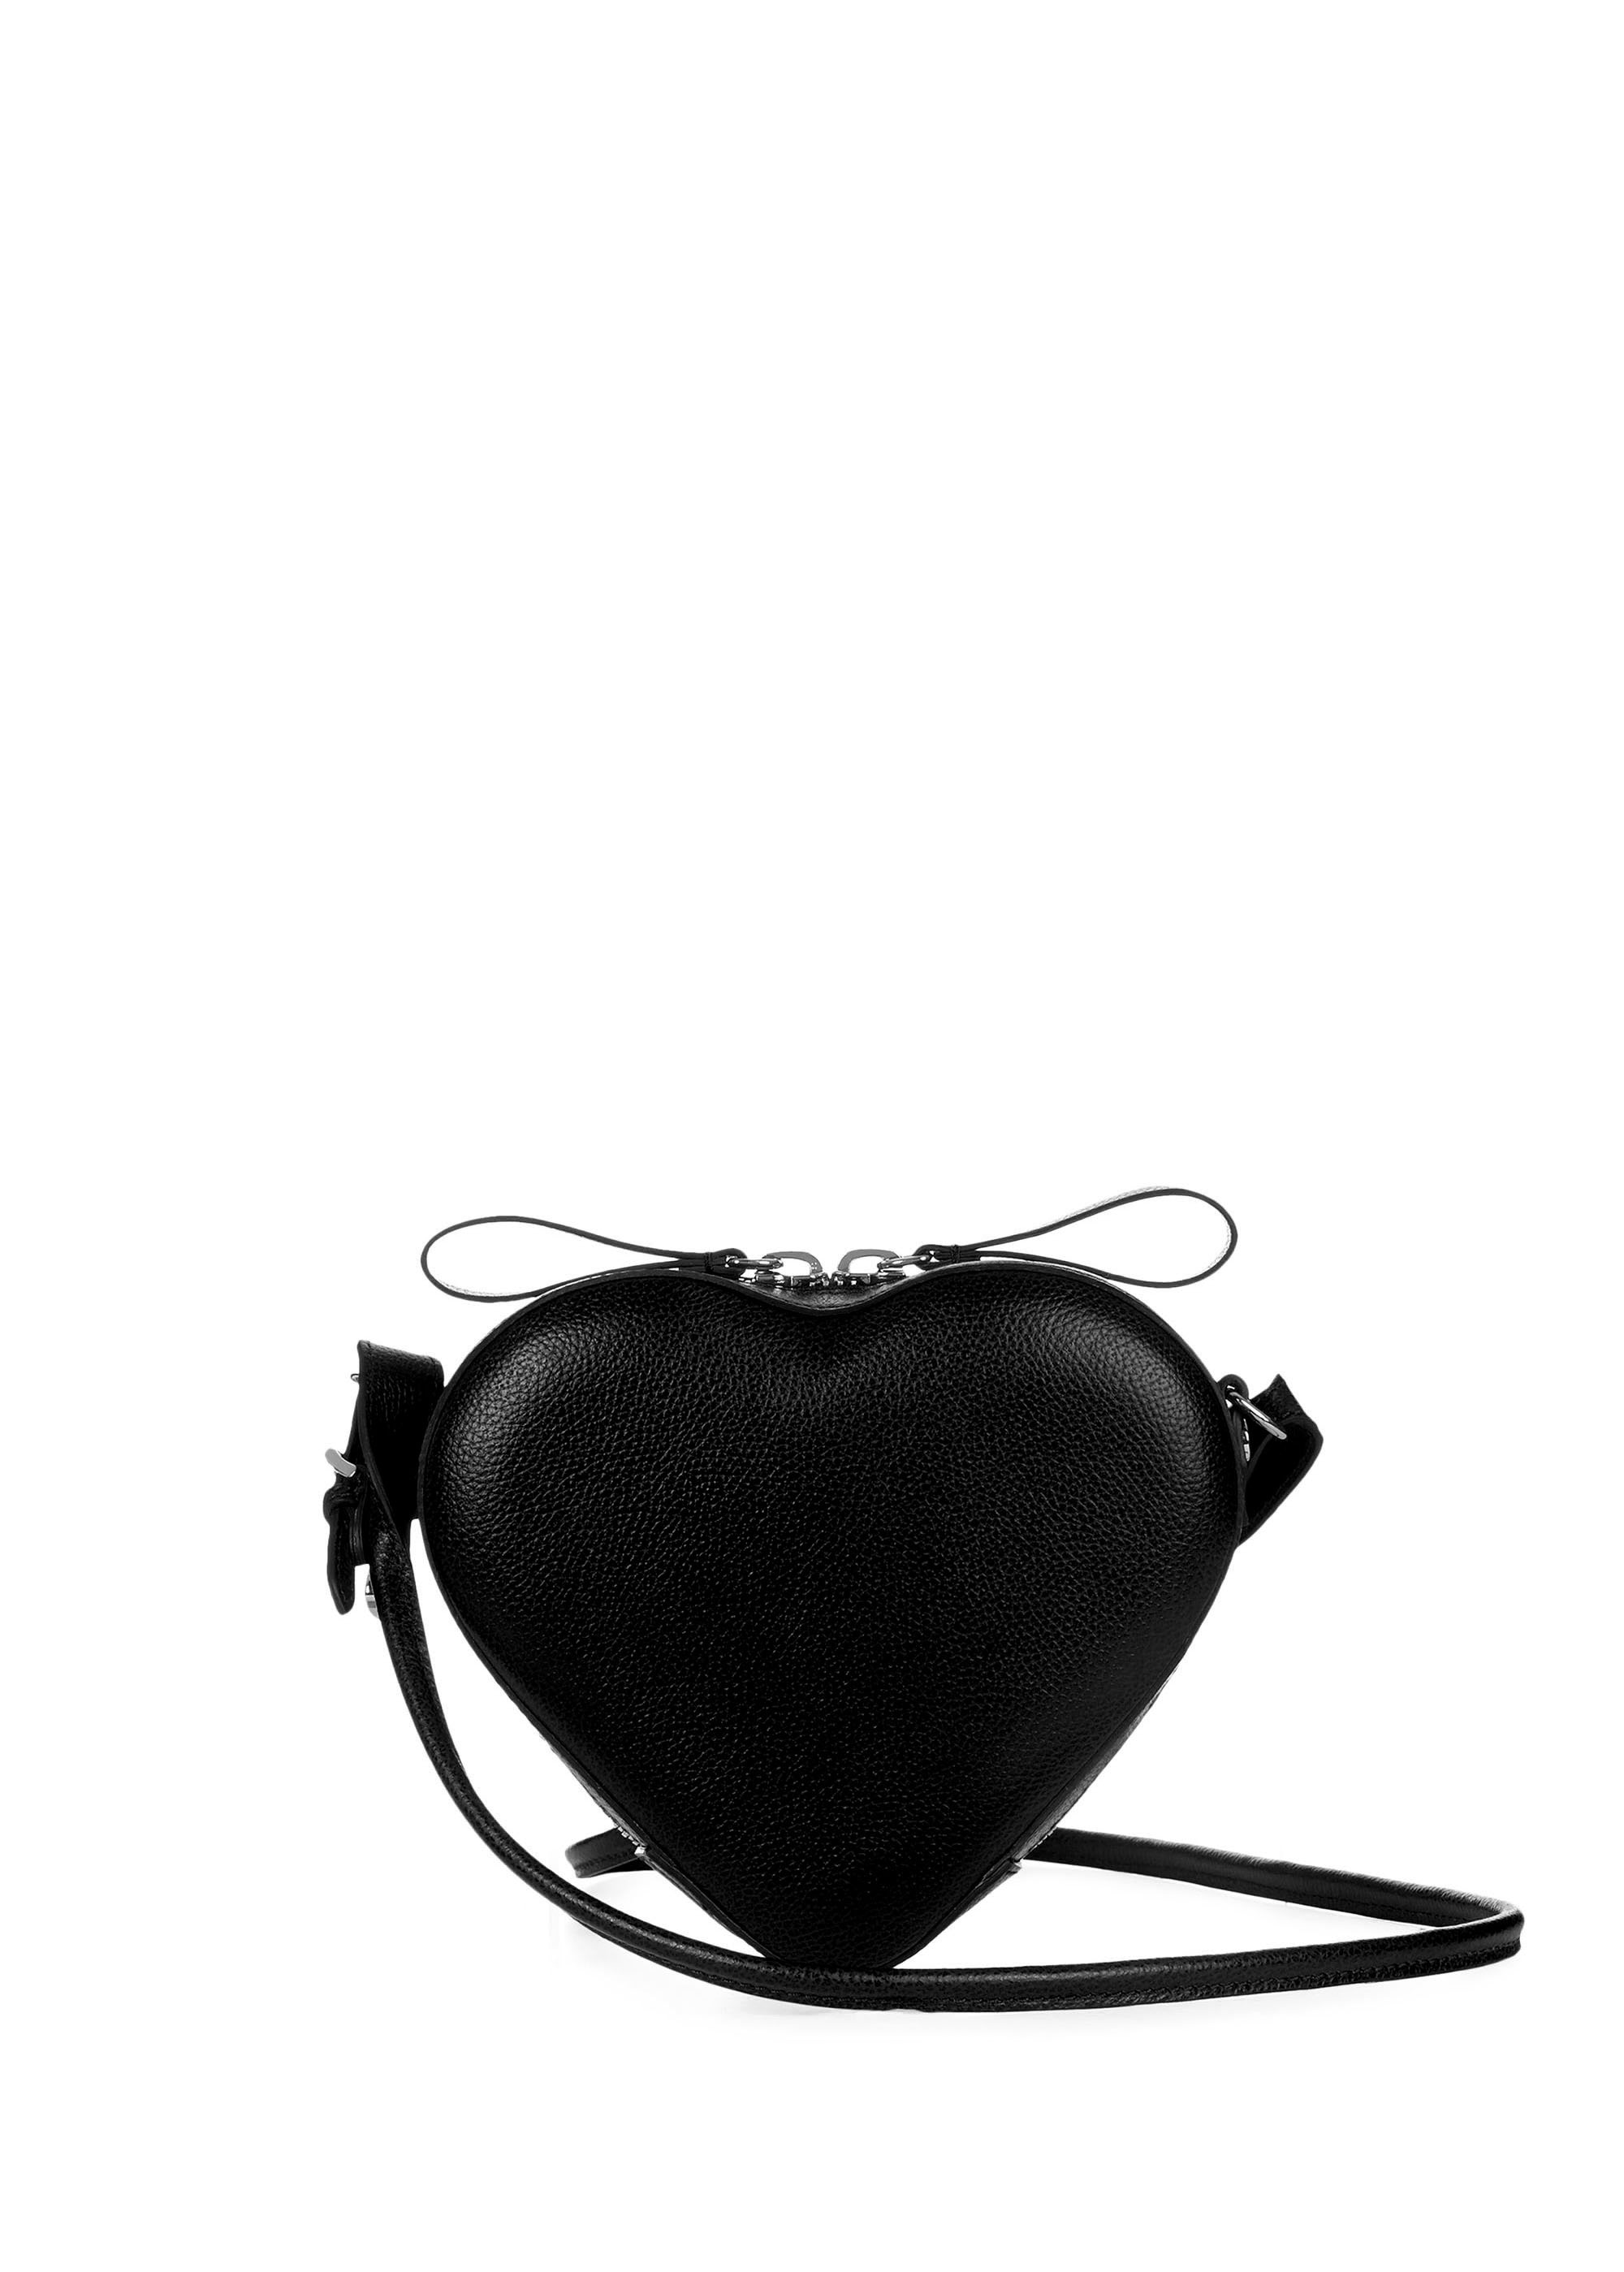 93d6d052084 Vivienne Westwood Accessories Johanna Heart Crossbody Bag - Black ...